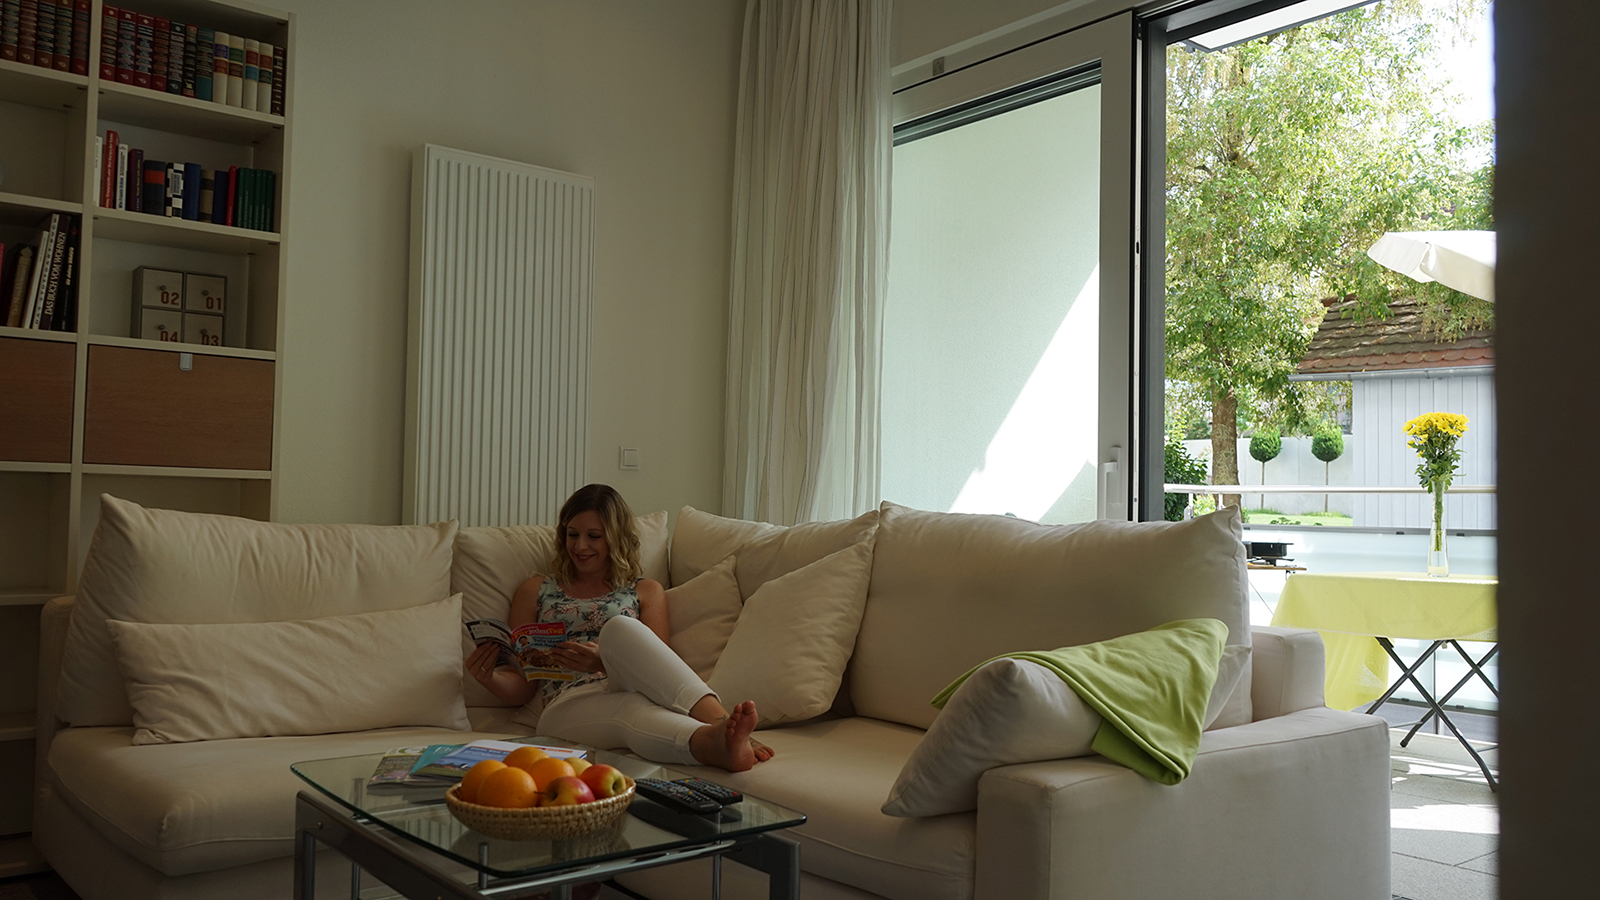 Holiday apartments on Lake Constance: Deluxe - Living